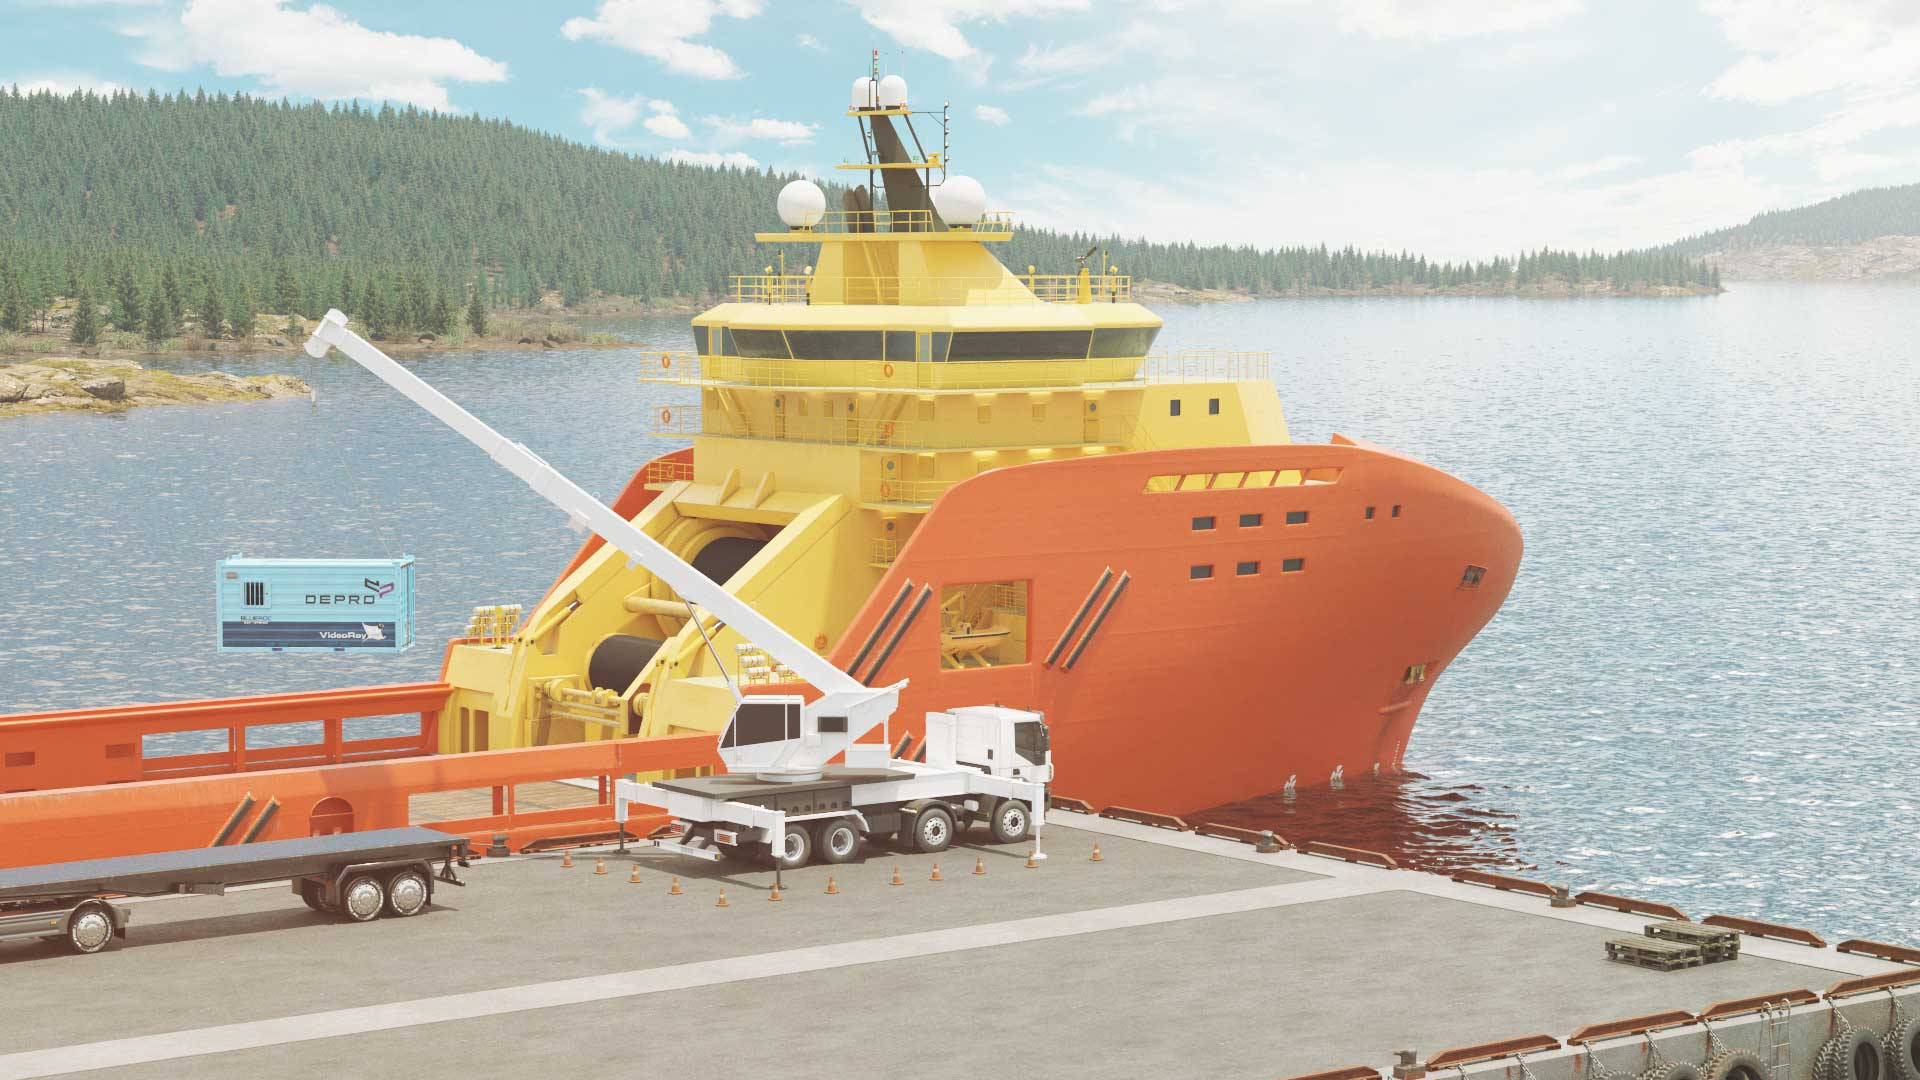 Illustration of a crane truck lifting a BLUEROC ROV solution on a ship